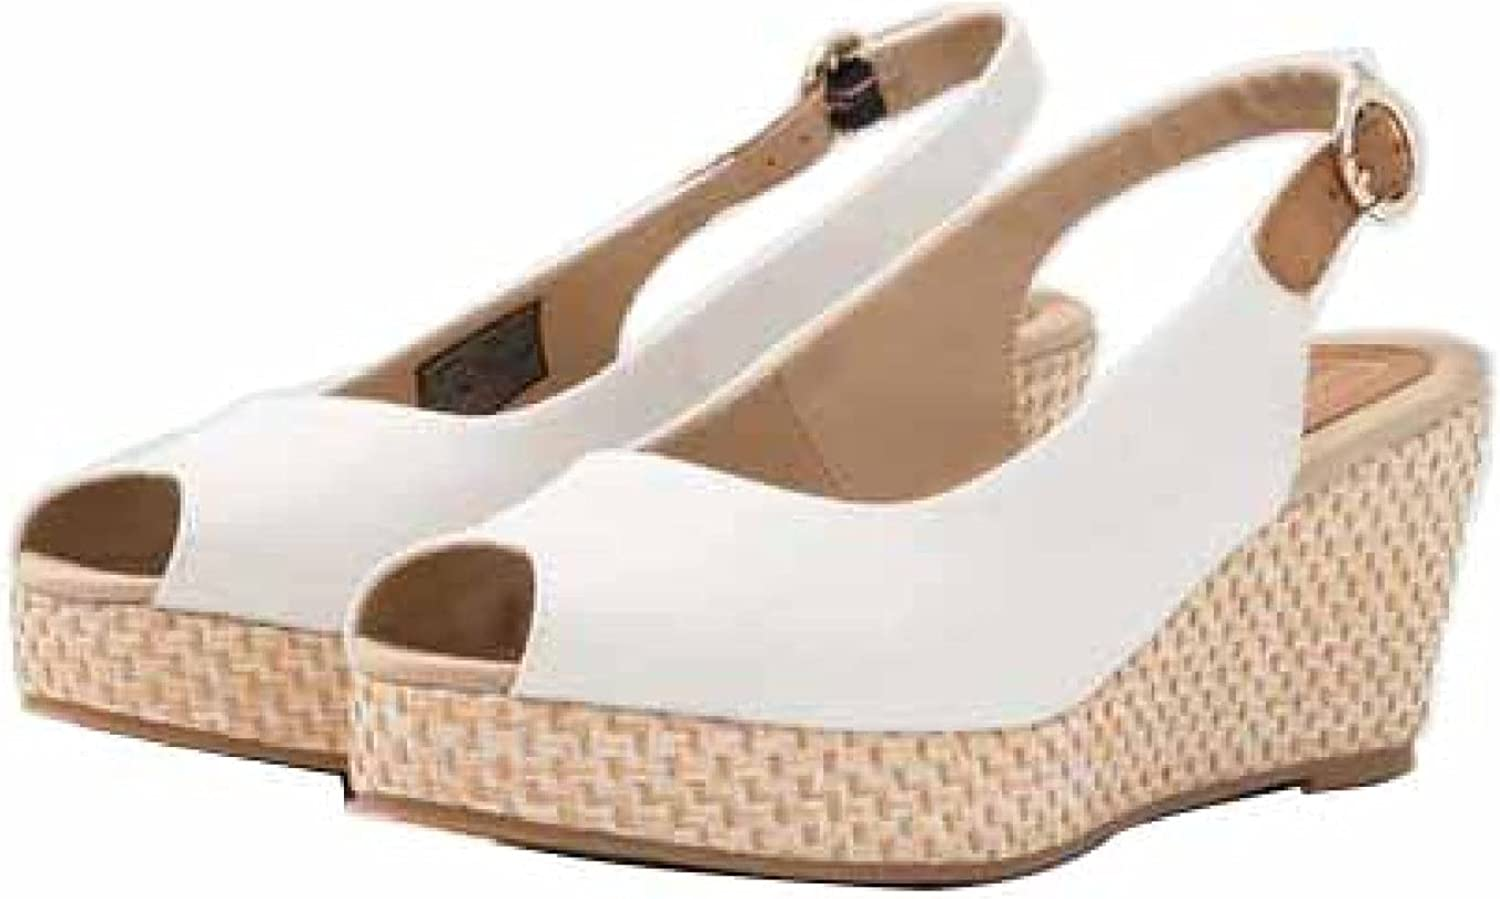 Wedge Sandals for Womens Outdoor Peep Toe with Ankle Buckle Strap Dress Shoe